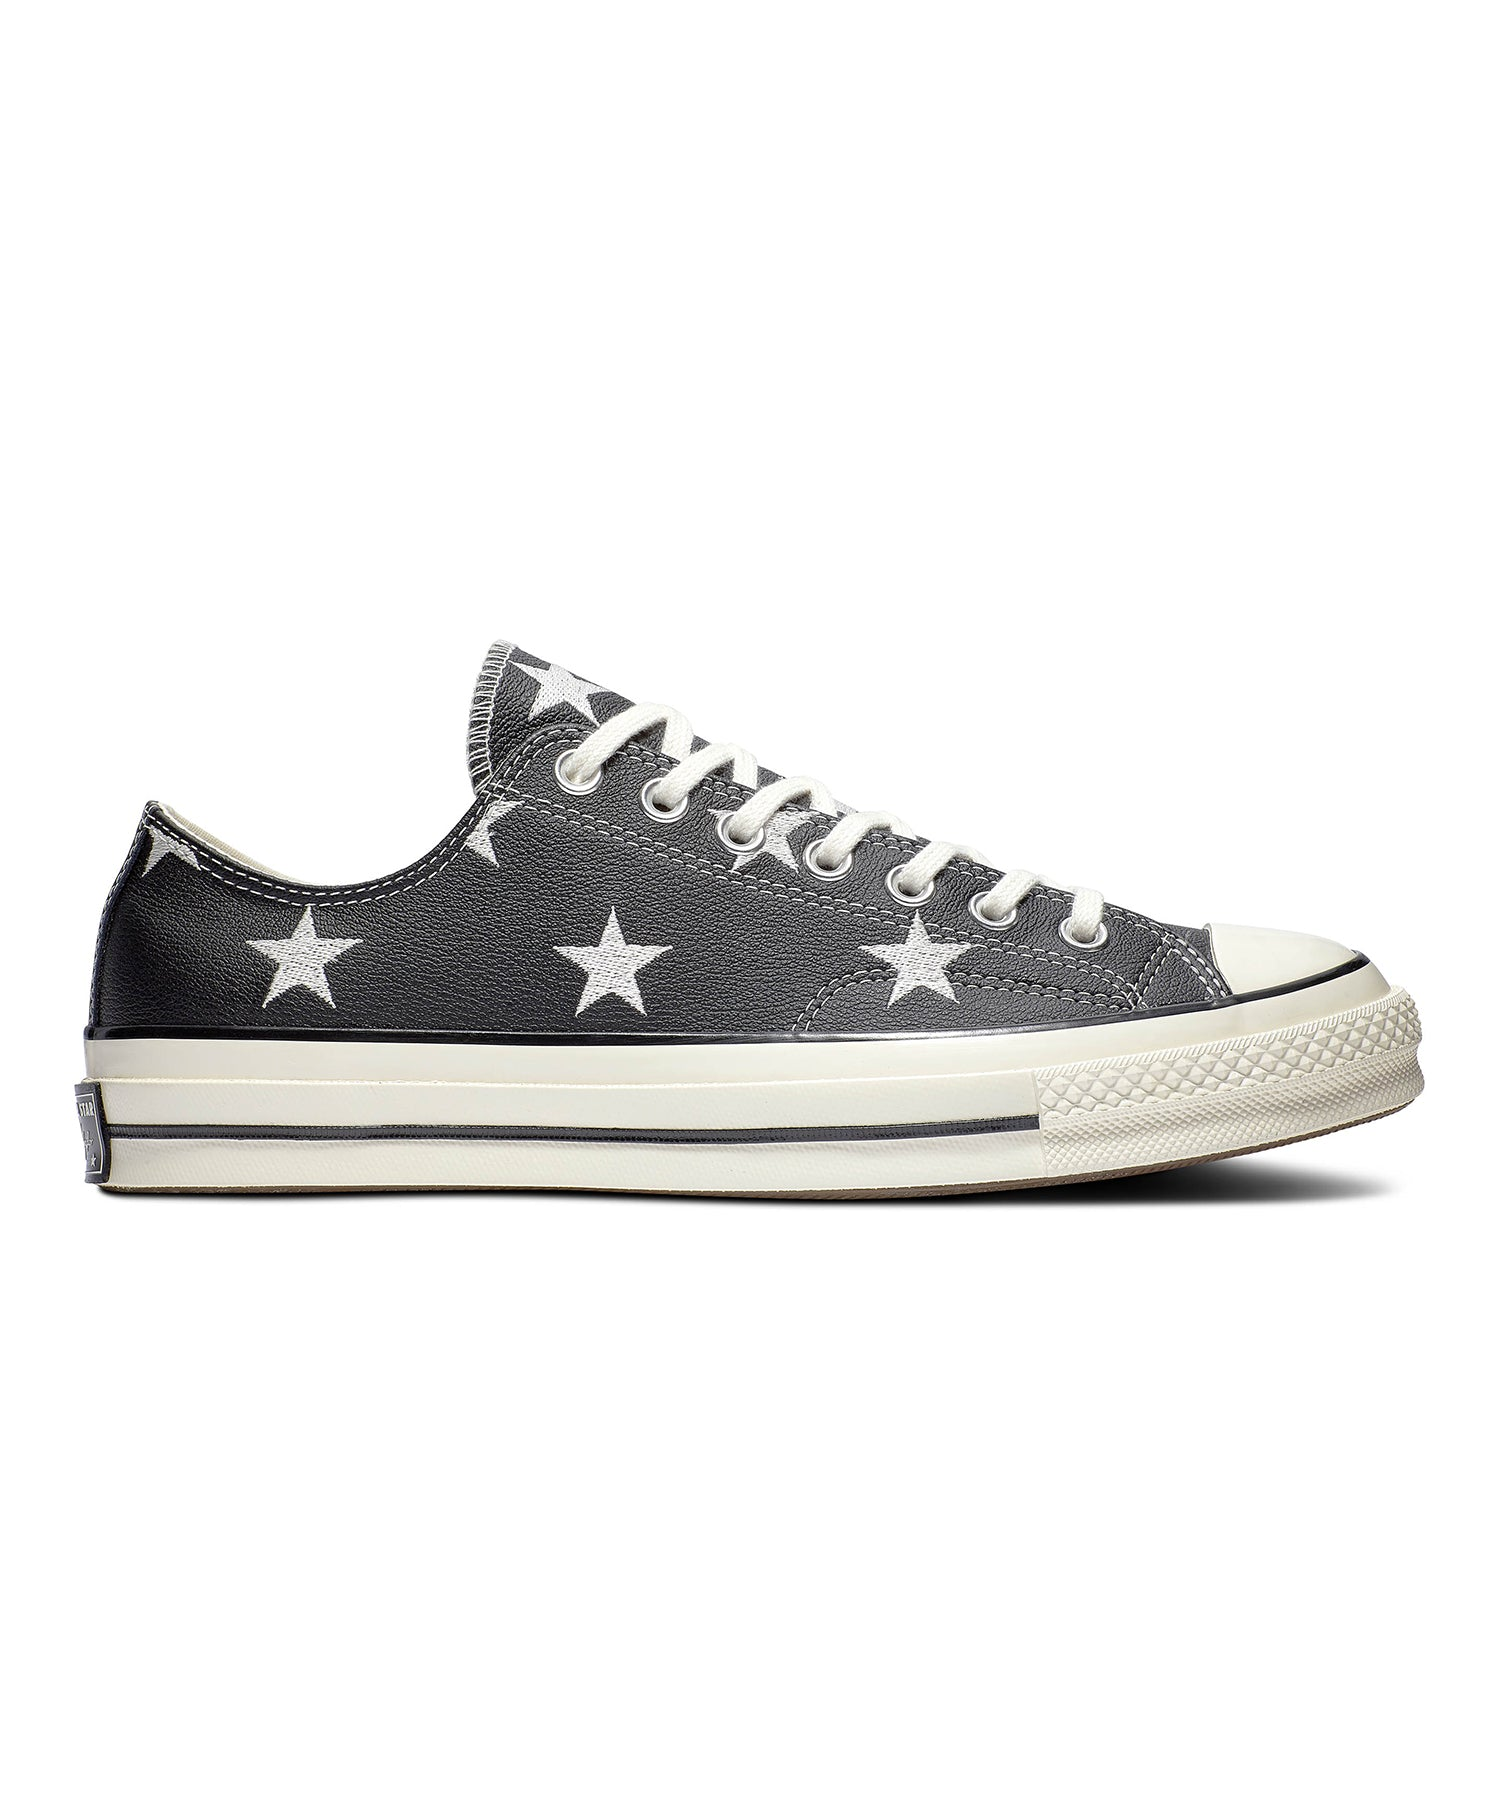 Converse Leather Archive Prints Chuck 70 Ox